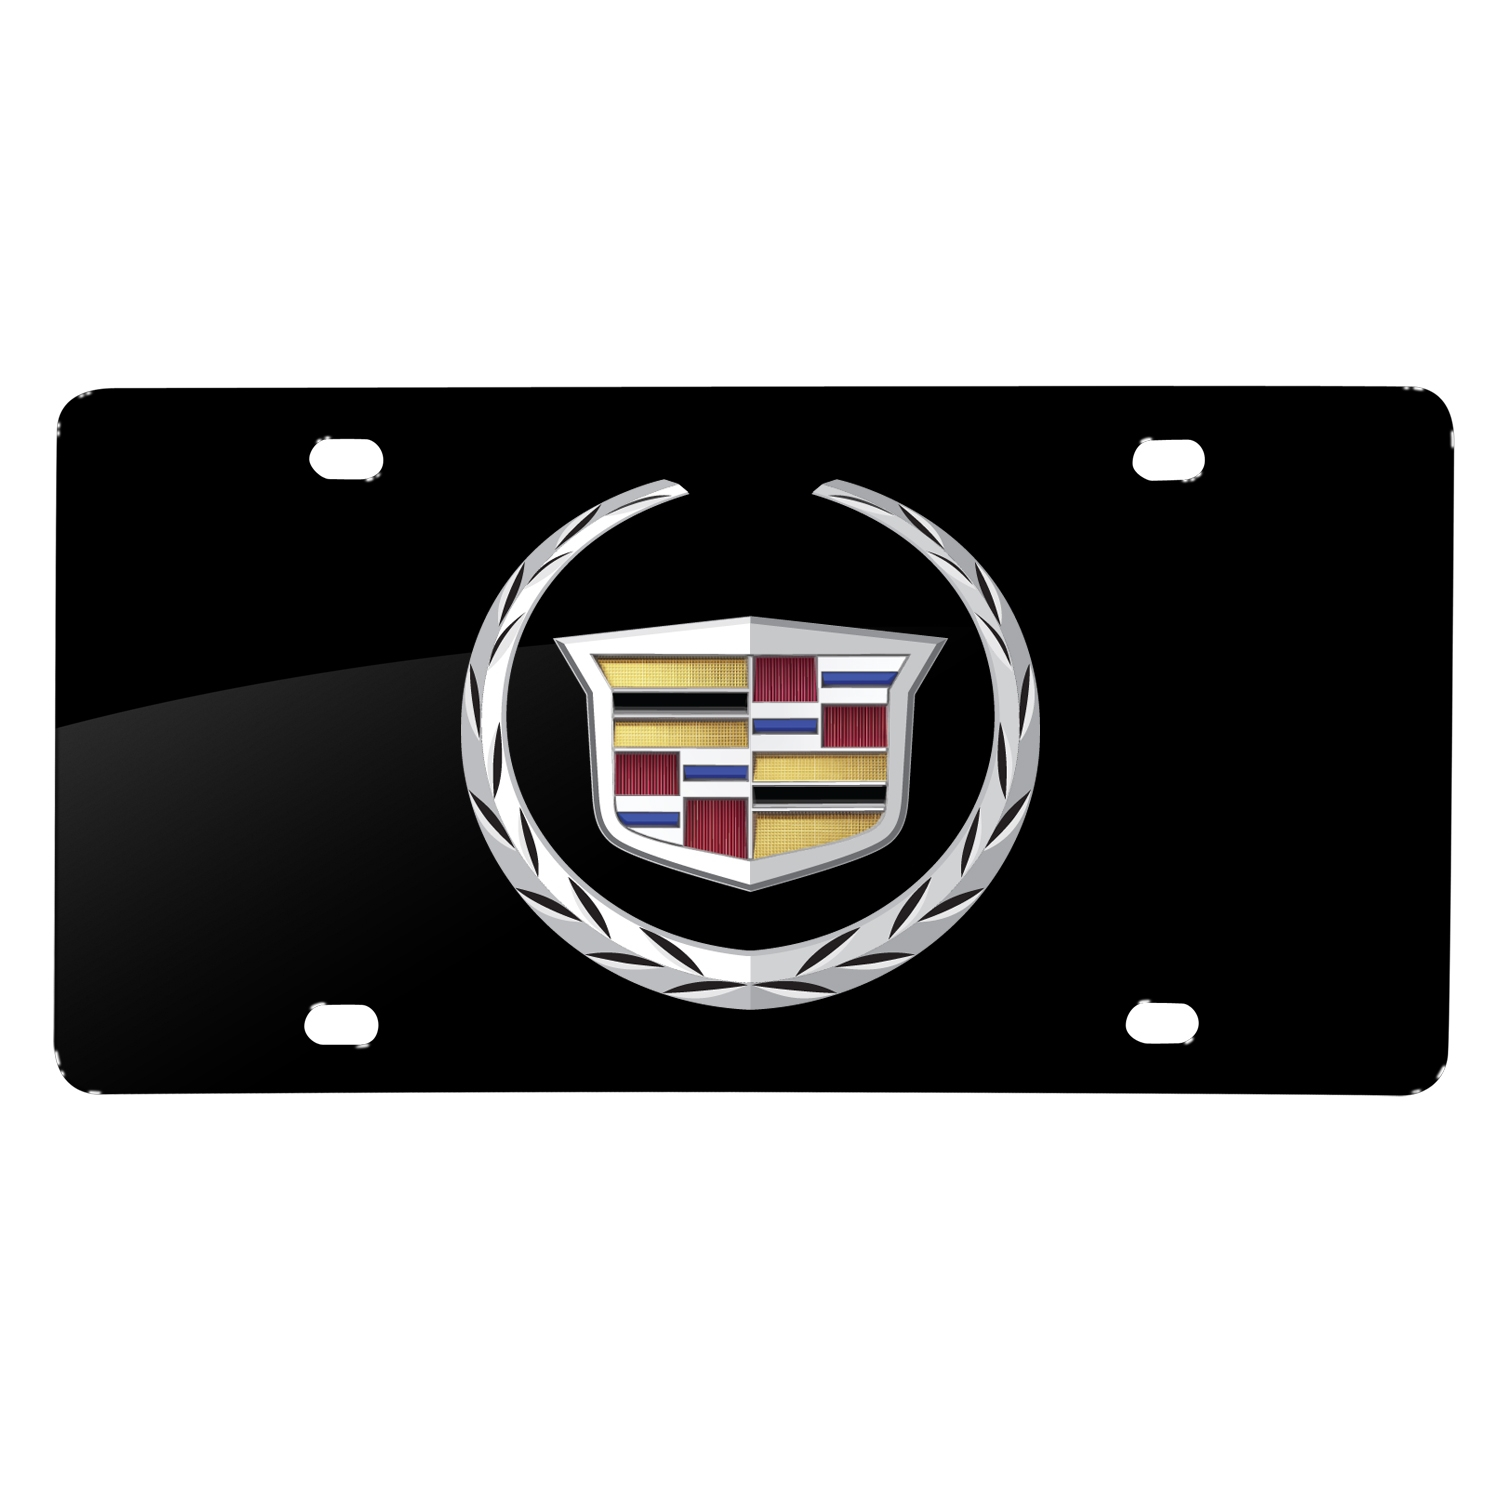 Cadillac 2013 Logo UV Graphic Black Stainless Steel License Plate